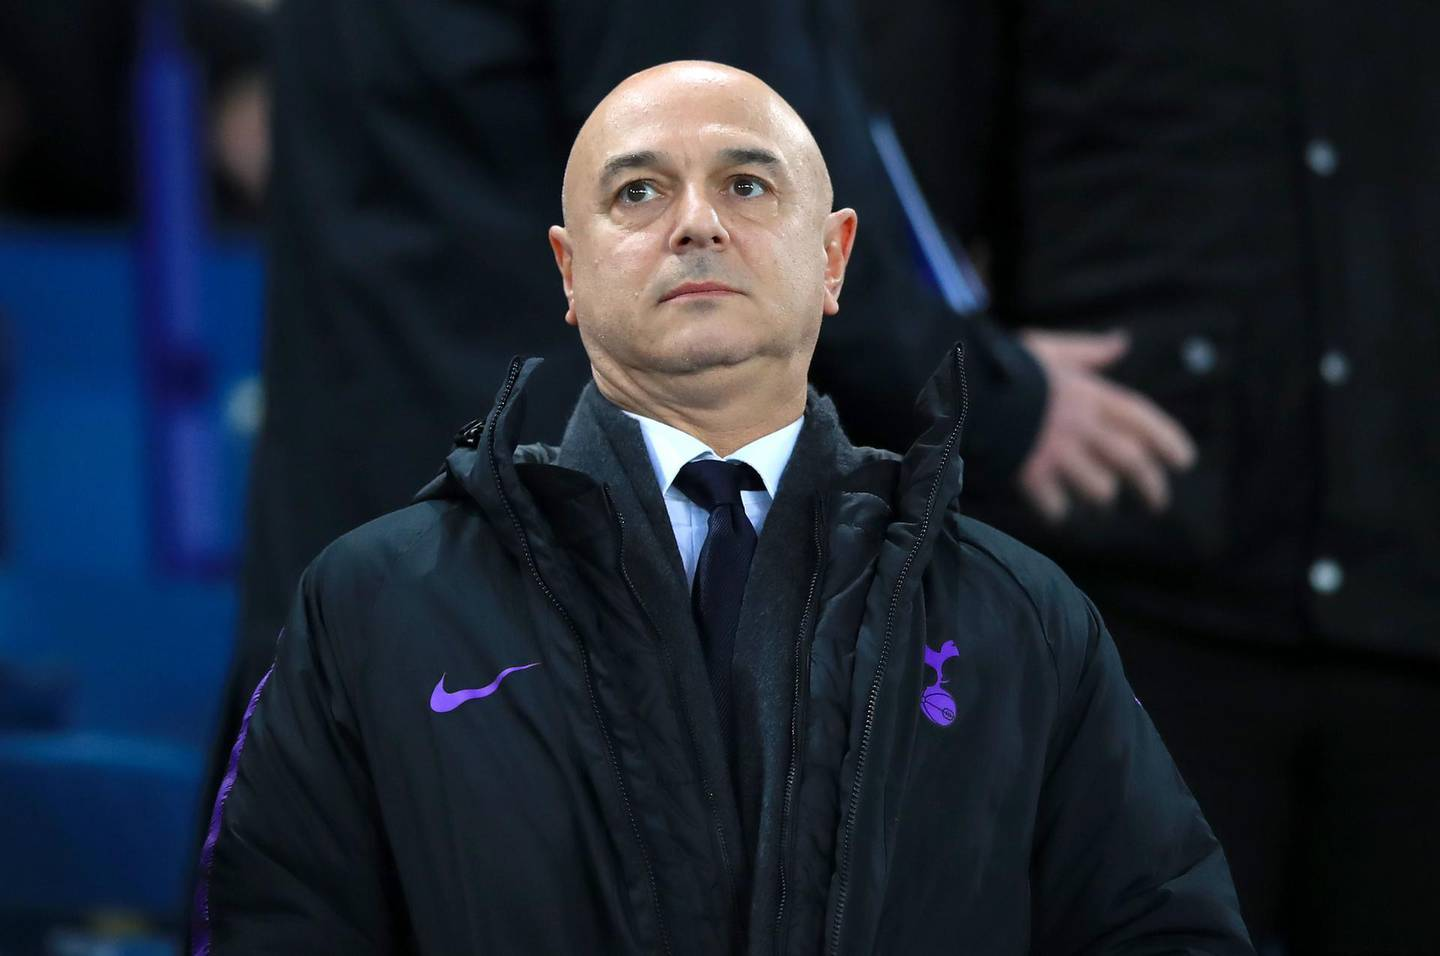 File photo dated 23-12-2018 of Tottenham Chairman Daniel Levy who was paid a £3million bonus for delivering the club's new stadium. PA Photo. Issue date: Tuesday March 31, 2020. The hefty gift, which was additional to his £4million salary, was deferred from 2018, after Spurs moved into their 62,000-seater stadium – widely regarded as the best in the world – last April. See PA story SOCCER Tottenham. Photo credit should read Peter Byrne/PA Wire